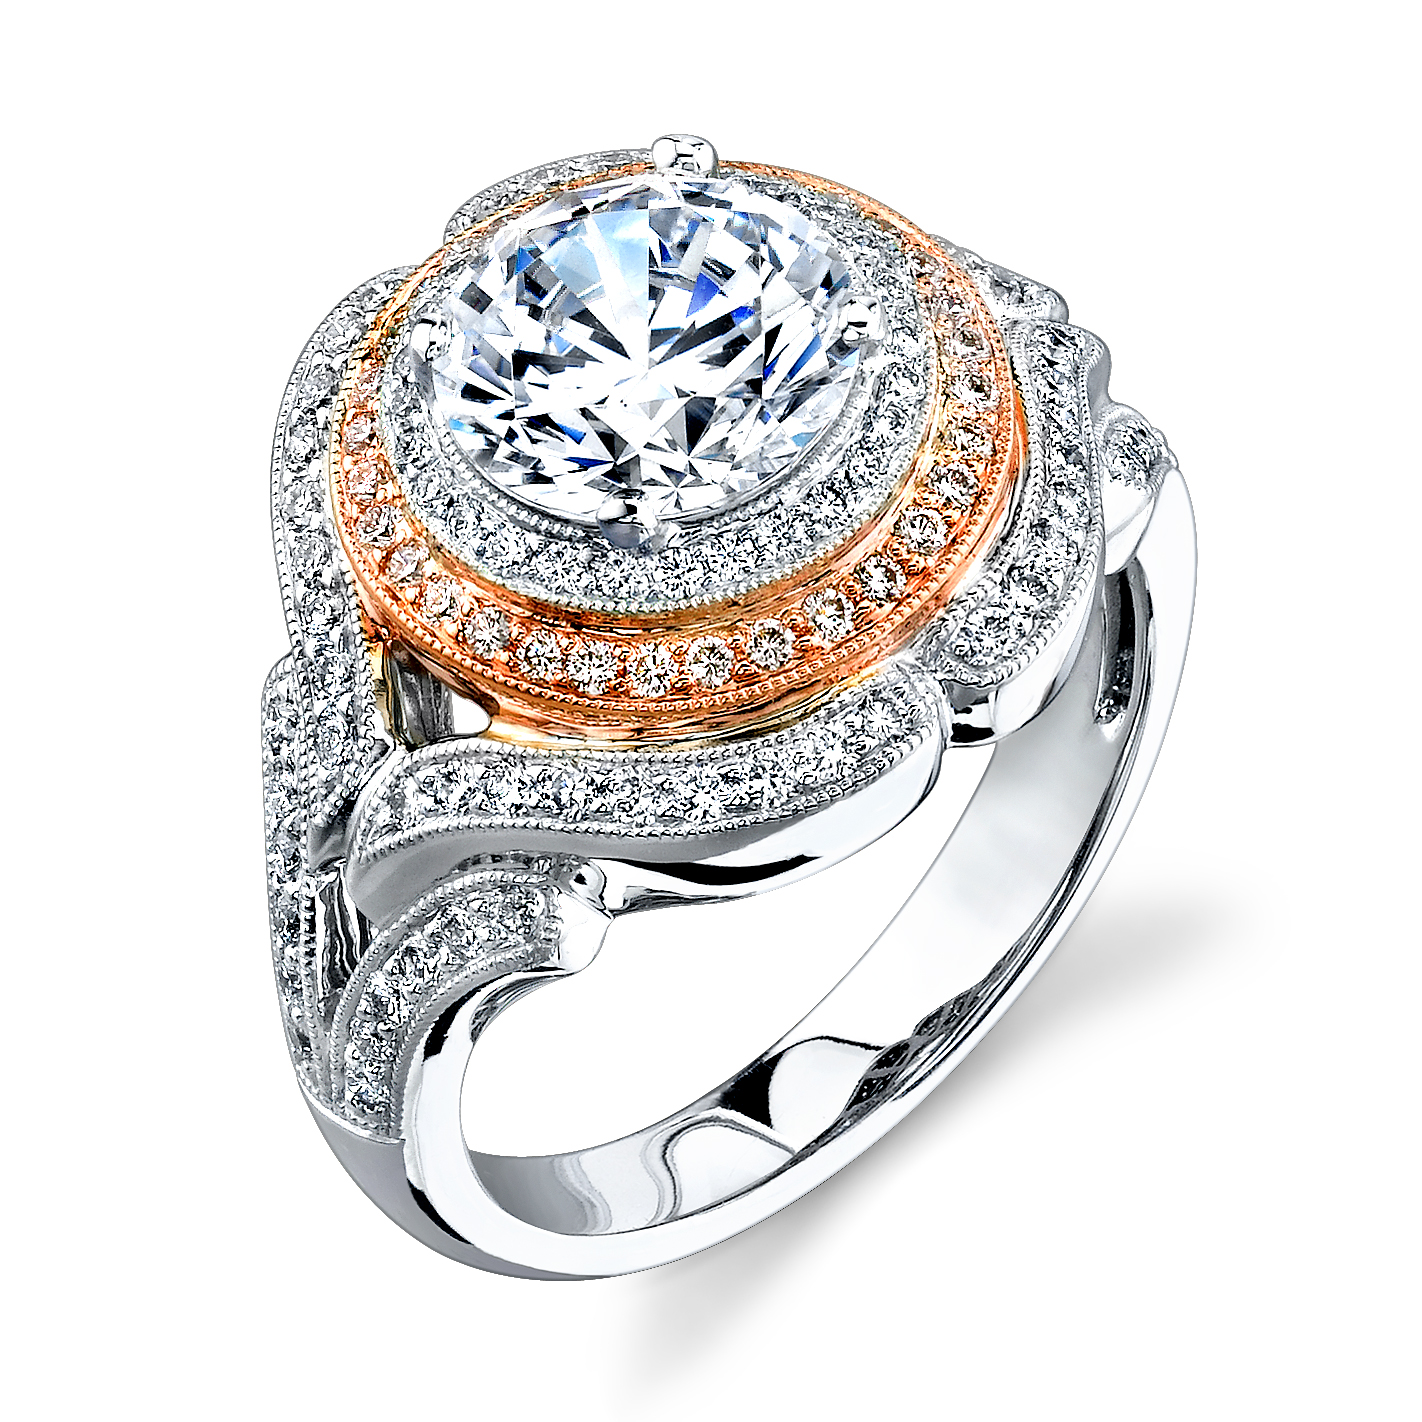 Vintage Style Simon G Halo Engagement Ring With Micro Pave